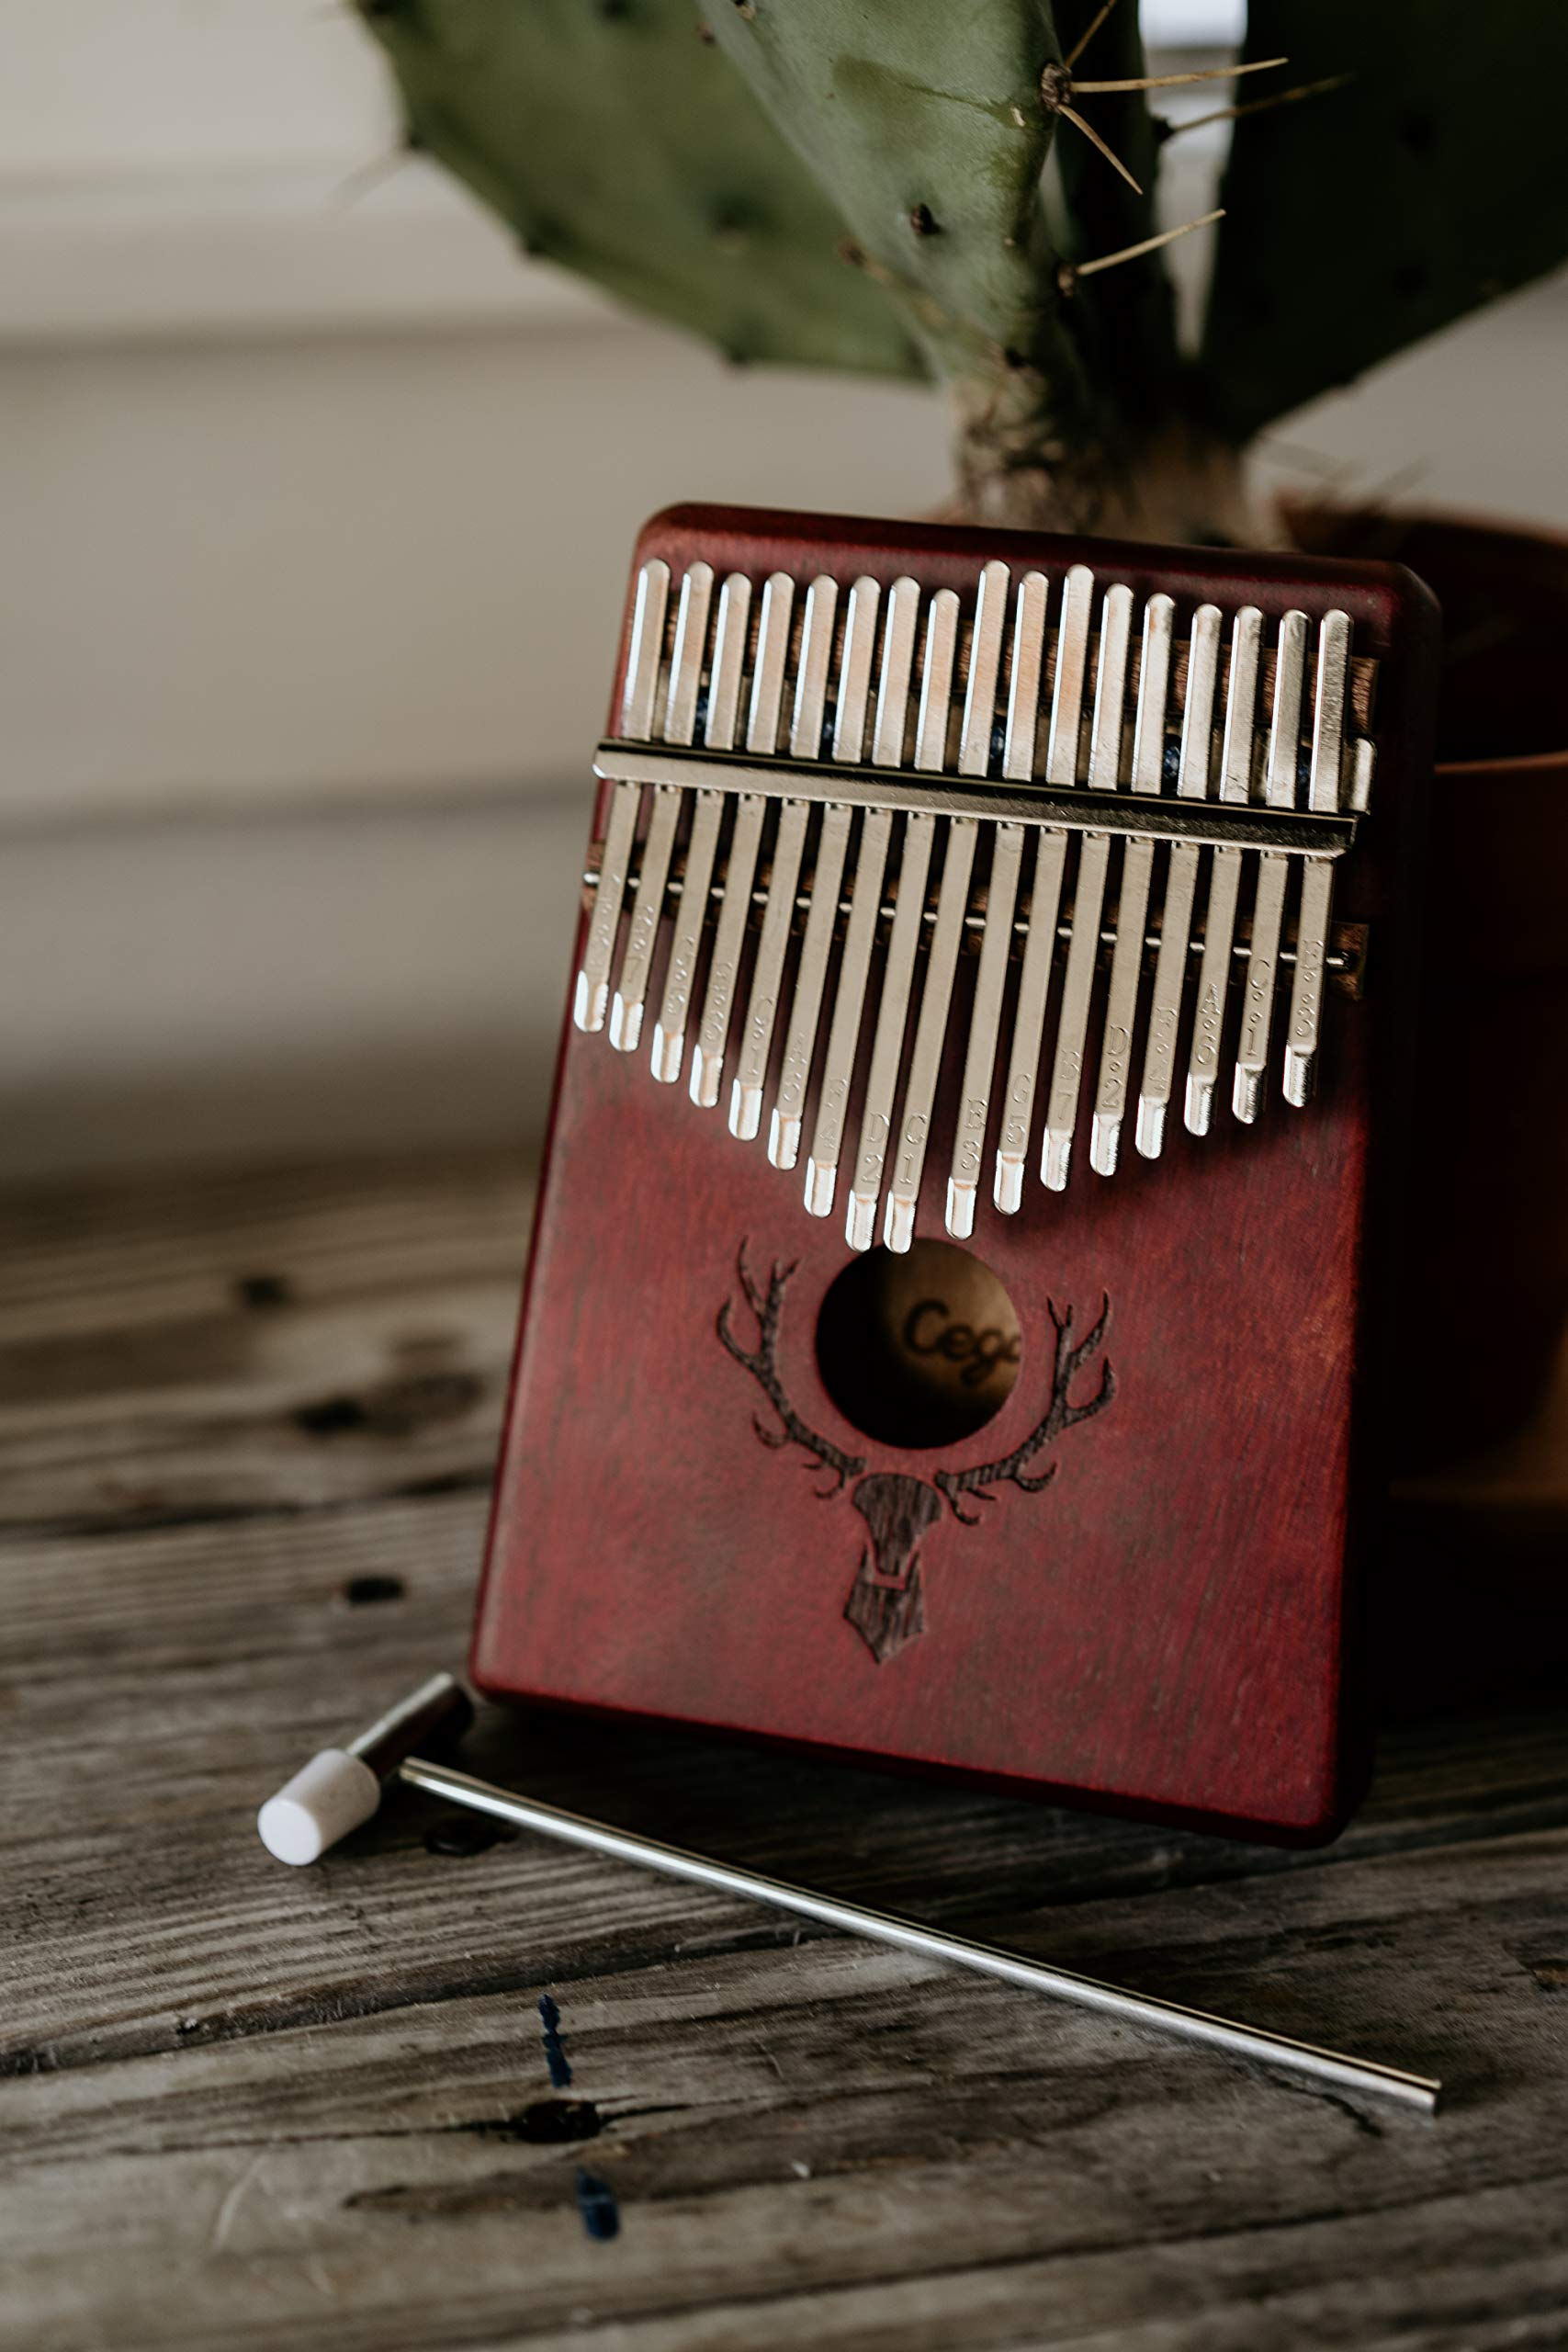 TimberTunes 17 Key Kalimba Thumb Finger Piano Therapy Musical Instrument for Adults Children, Solid Mahogany Wood, Engraved Elk Antler,Tuning Hammer and Music Book, Engraved Keys, Velvet Case, Unique by Timbertunes (Image #7)